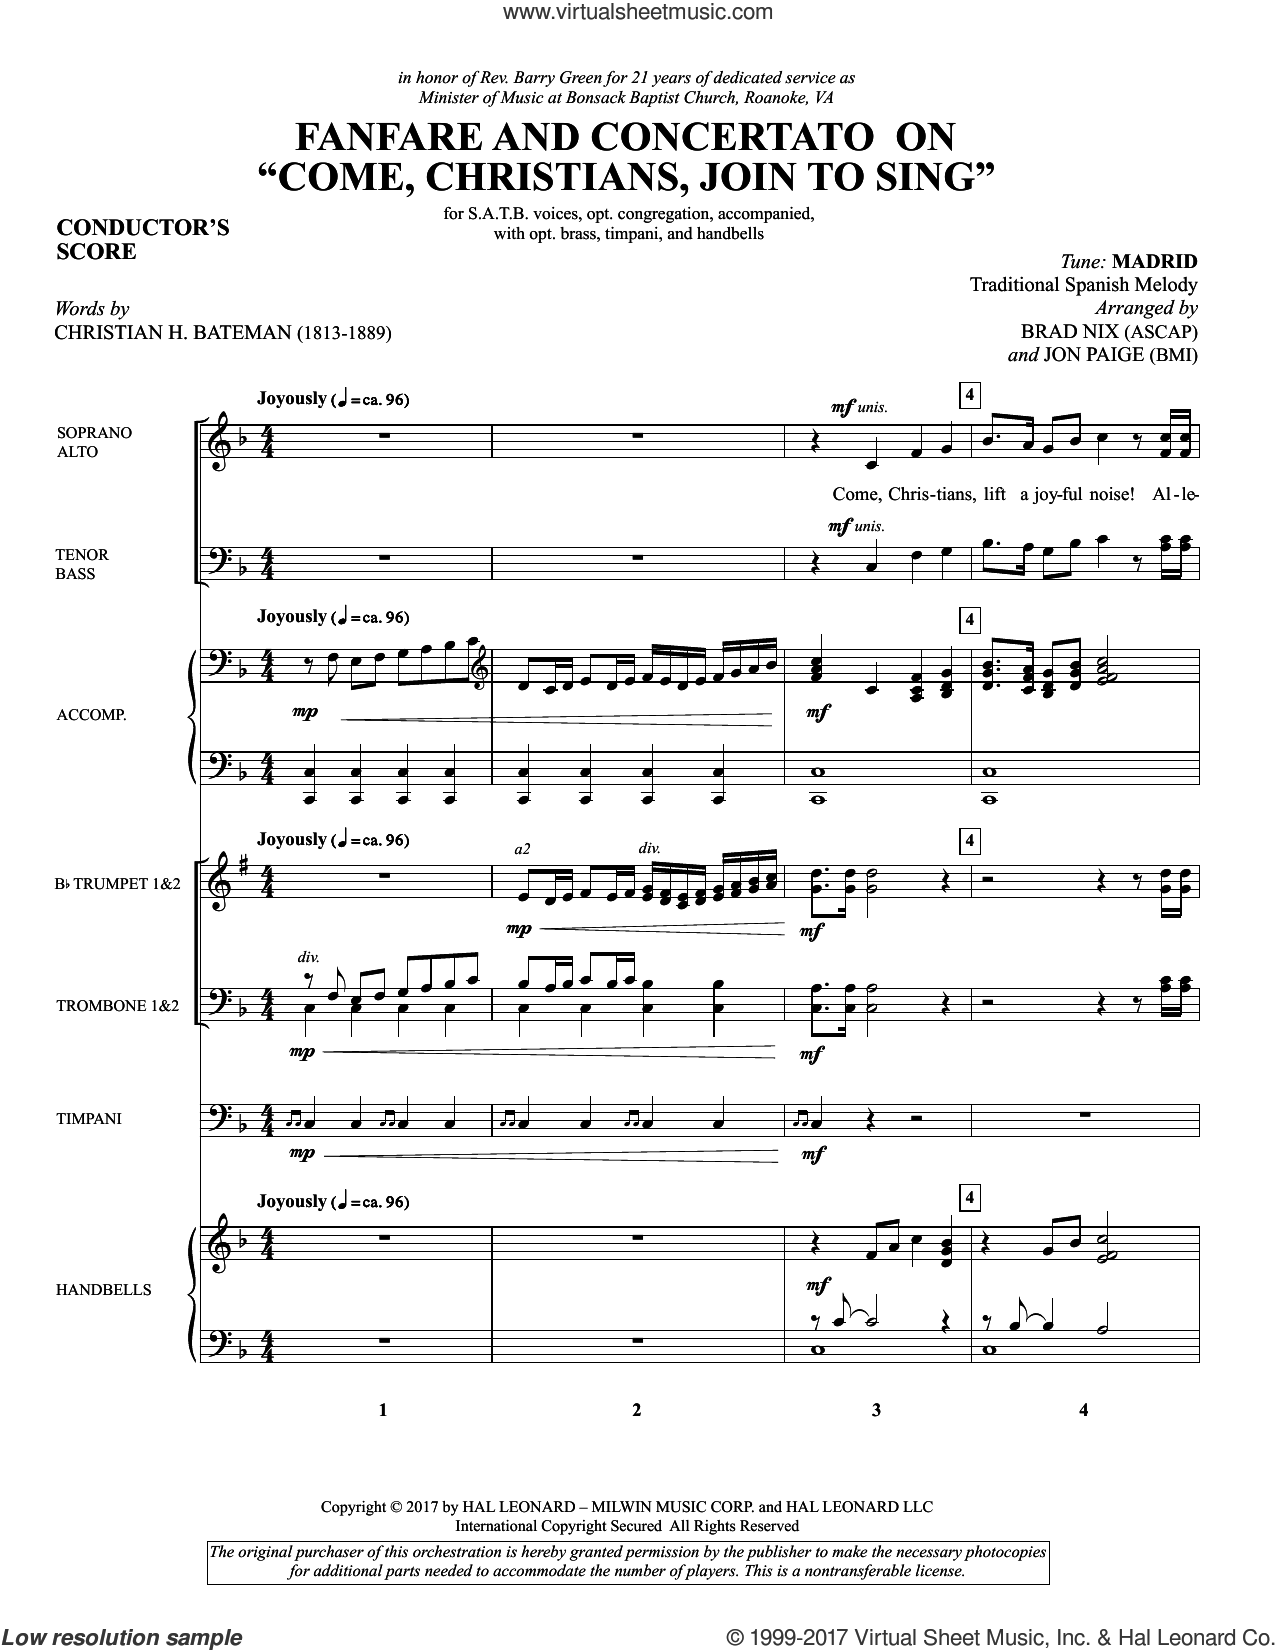 Fanfare and Concertato on 'Come, Christians, Join to Sing' (Brass and Timpani) (COMPLETE) sheet music for orchestra/band by Brad Nix, Christian Henry Bateman, Jon Paige and Miscellaneous, intermediate skill level